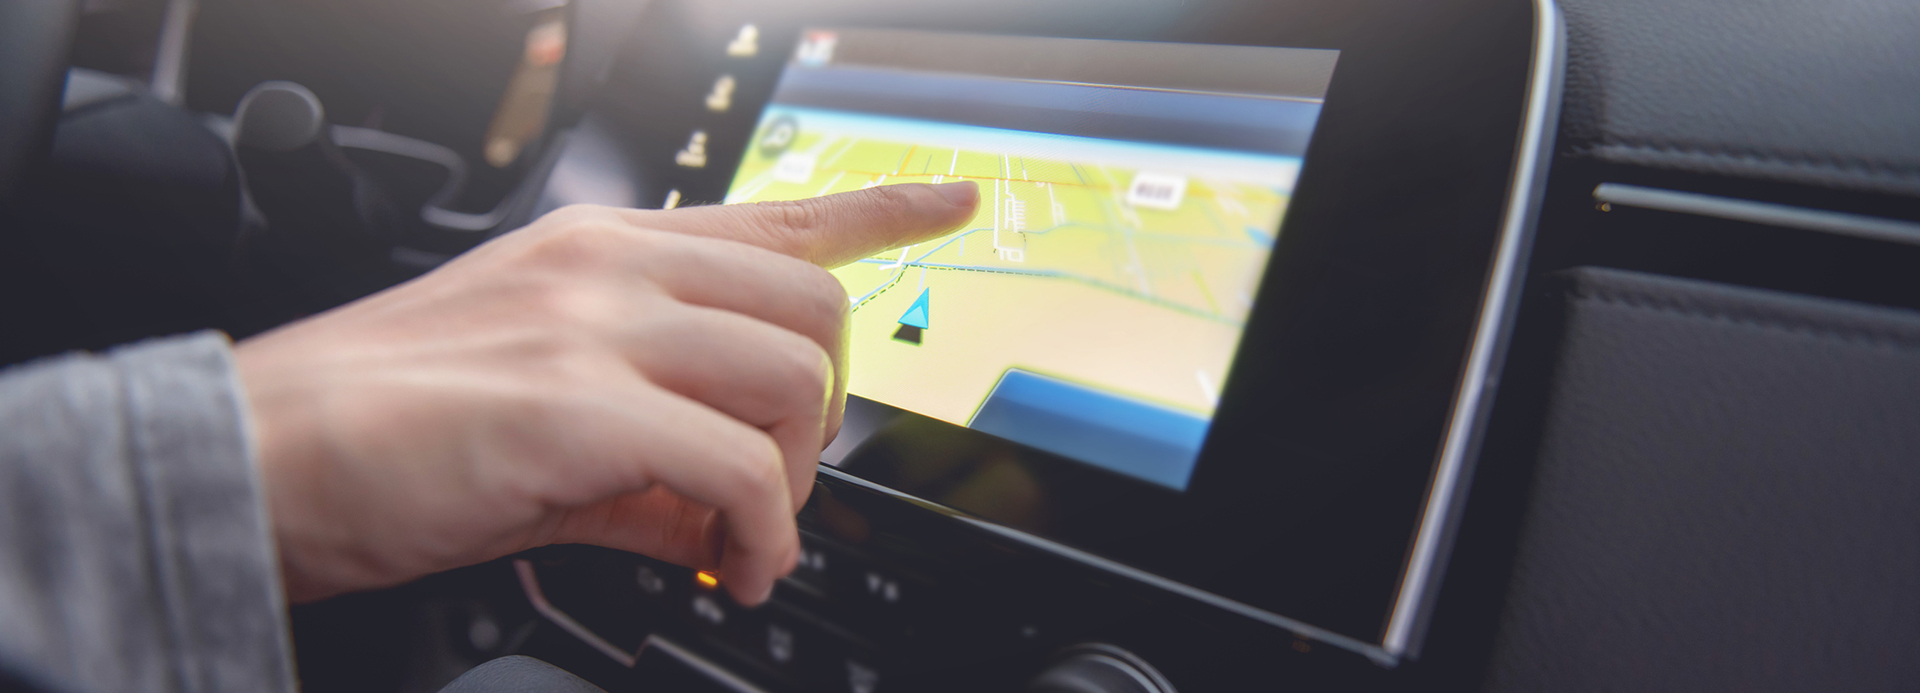 Person touching a GPS map in a car.